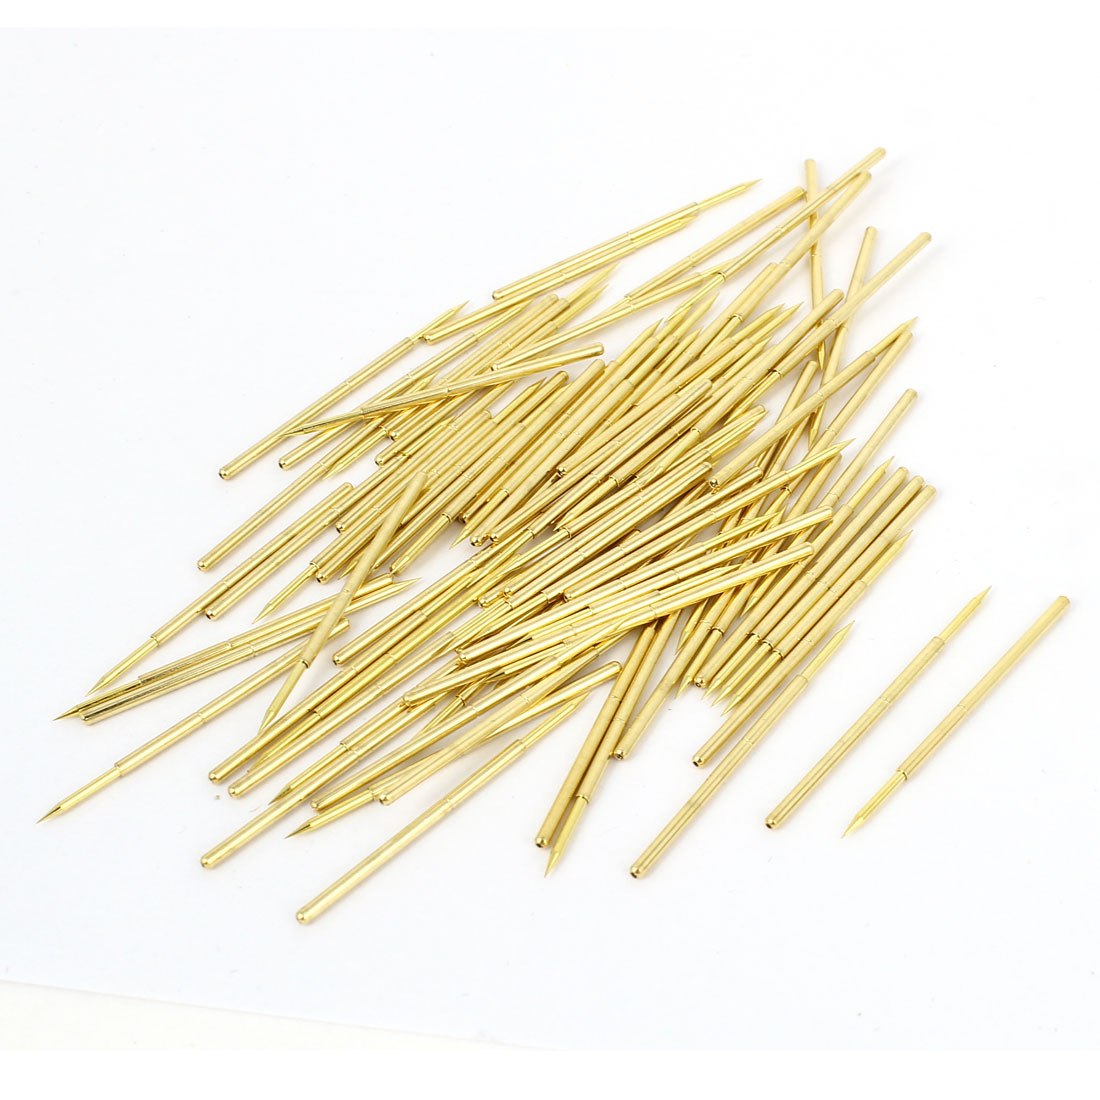 100 Pcs 33mm Length 1.0mm Spear Tip PCB Spring Test Probe Pin